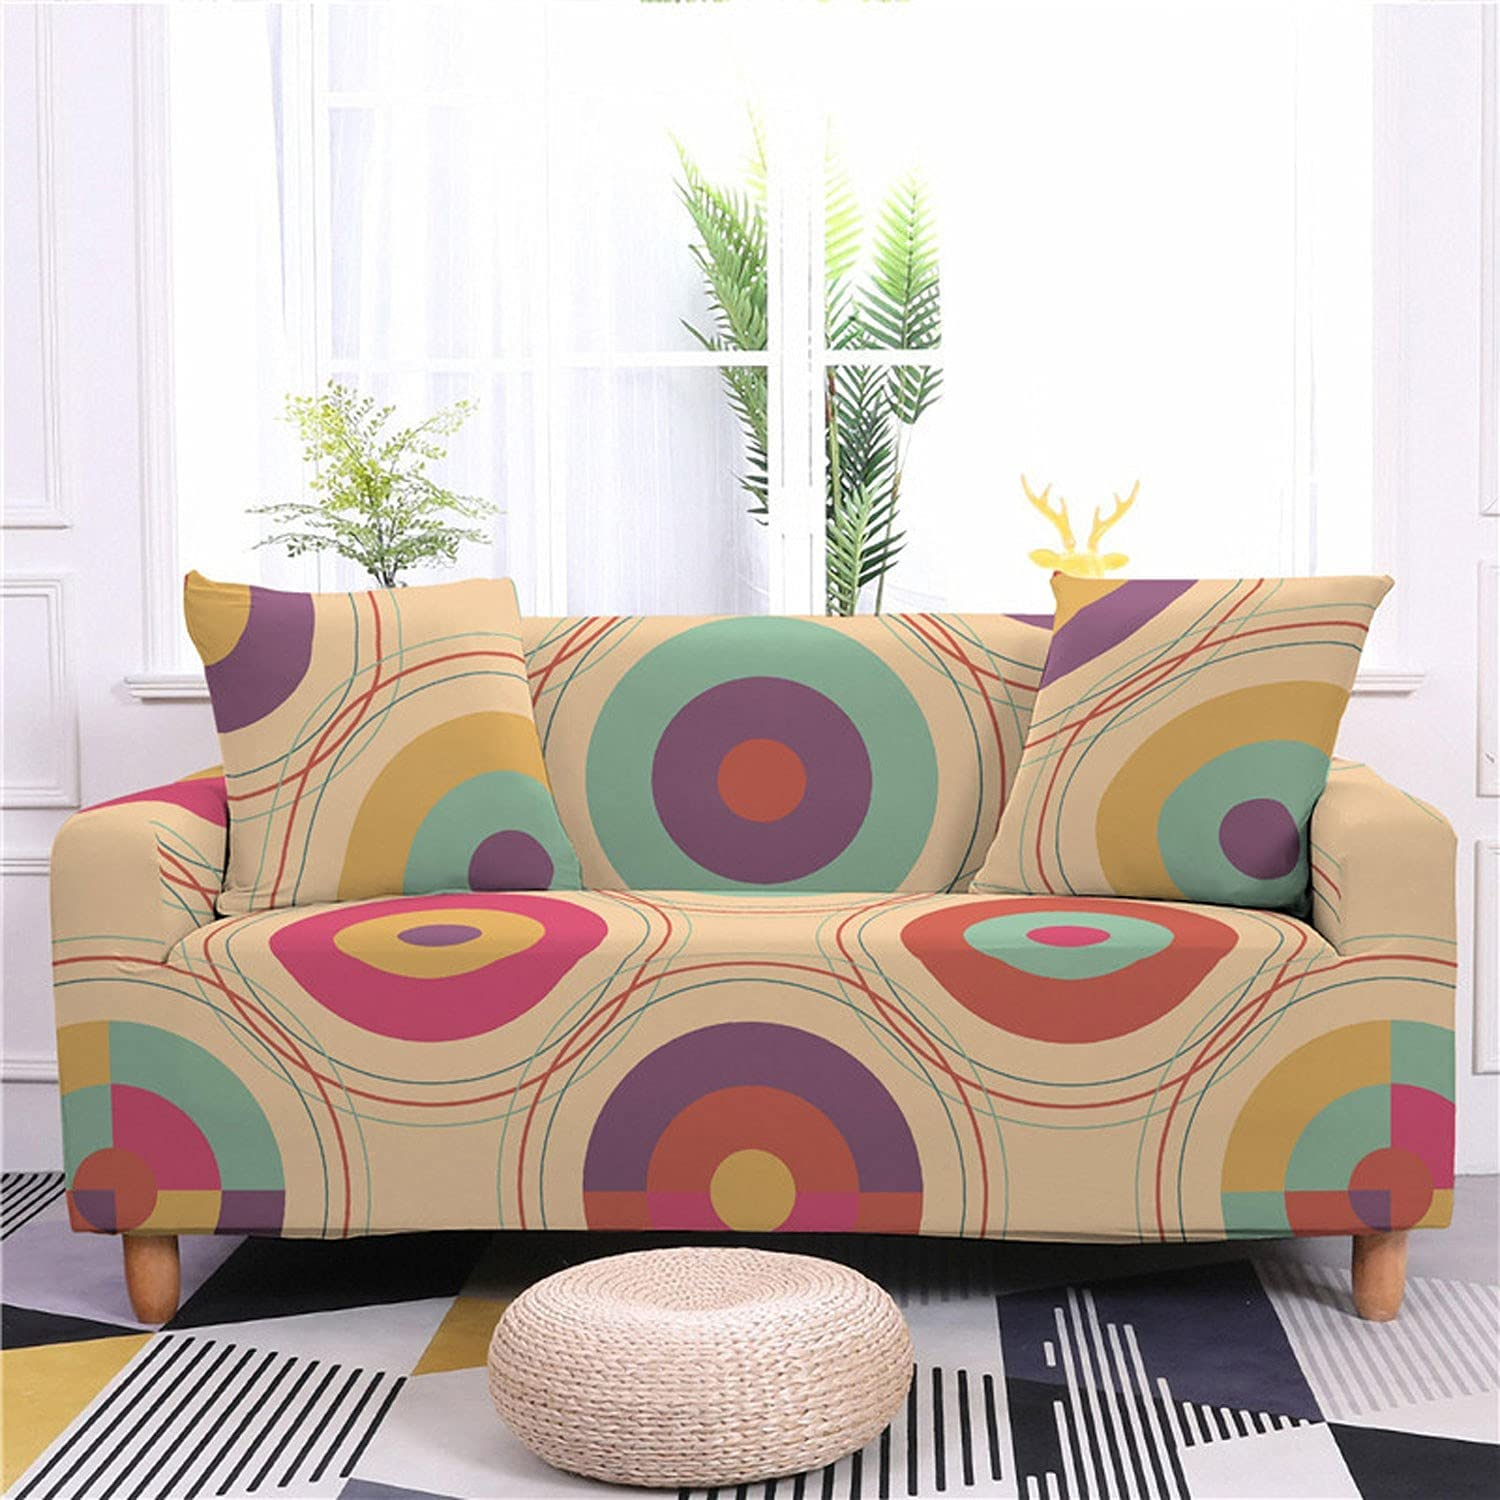 Modern Stretch Sofa Max 46% OFF Covers for 3 Stylish Cov Couch Cushion Excellence